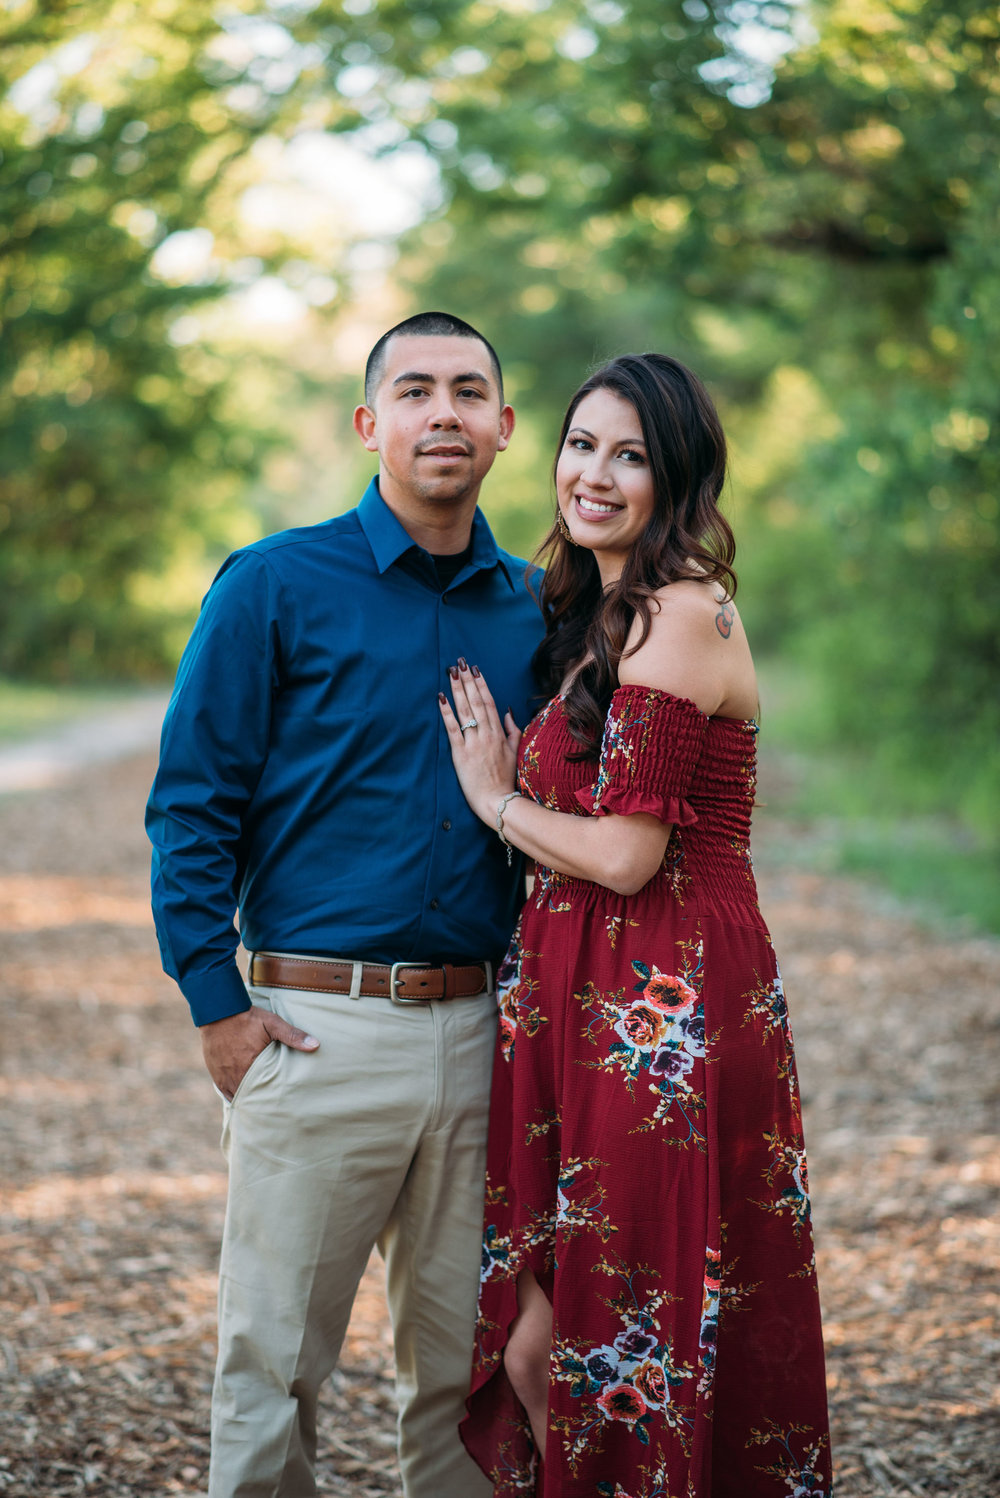 Aggie_Engagement_CollegeStation_LickCreekPark_07.jpg